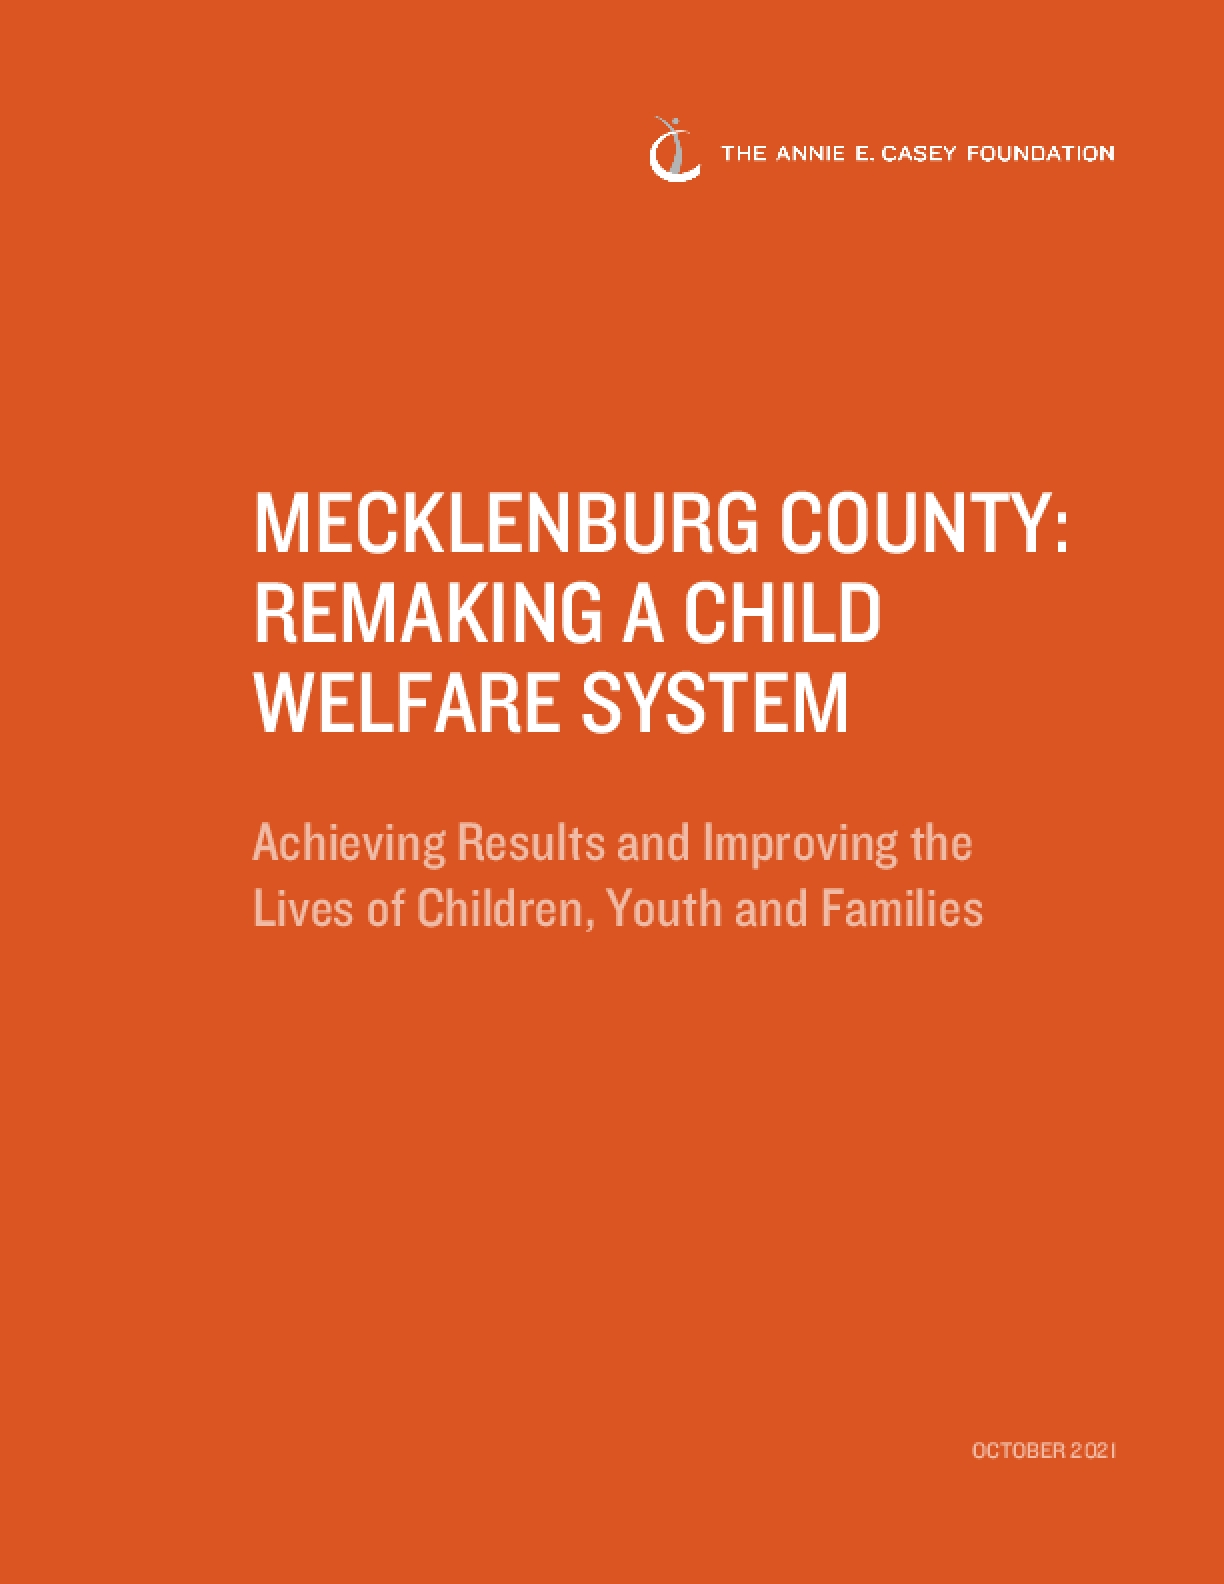 Mecklenburg County: Remaking a Child Welfare System